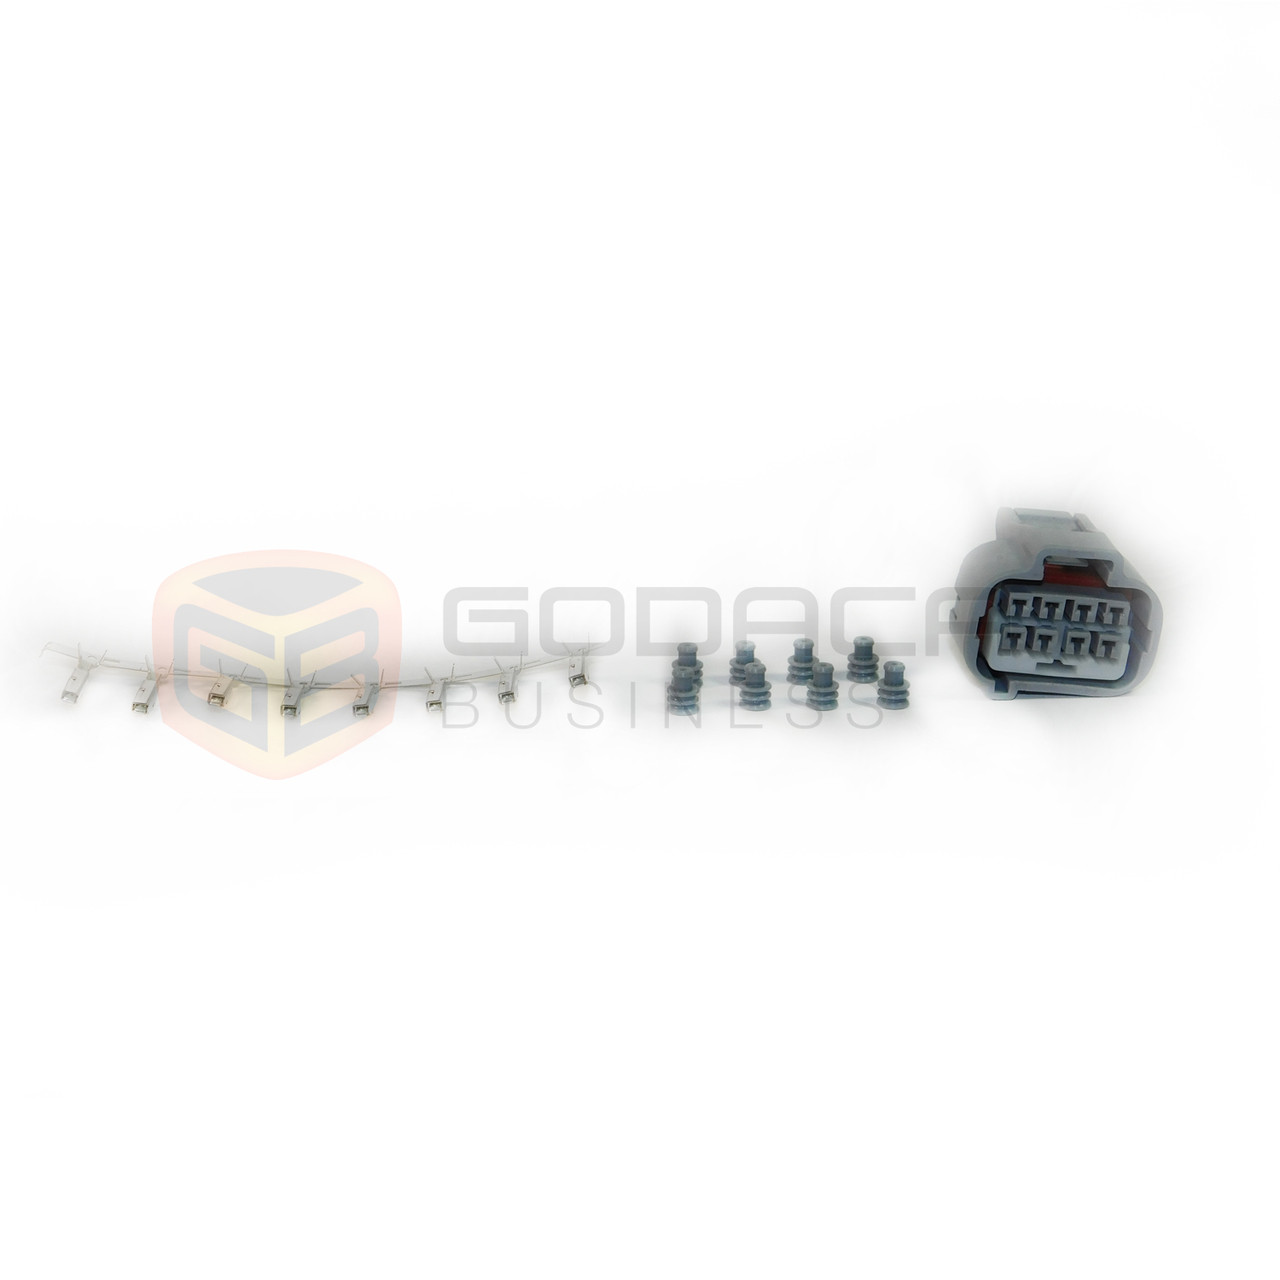 hight resolution of 1x connector for toyota supra mk4 fusebox 90980 10897 w out wire godaca llc